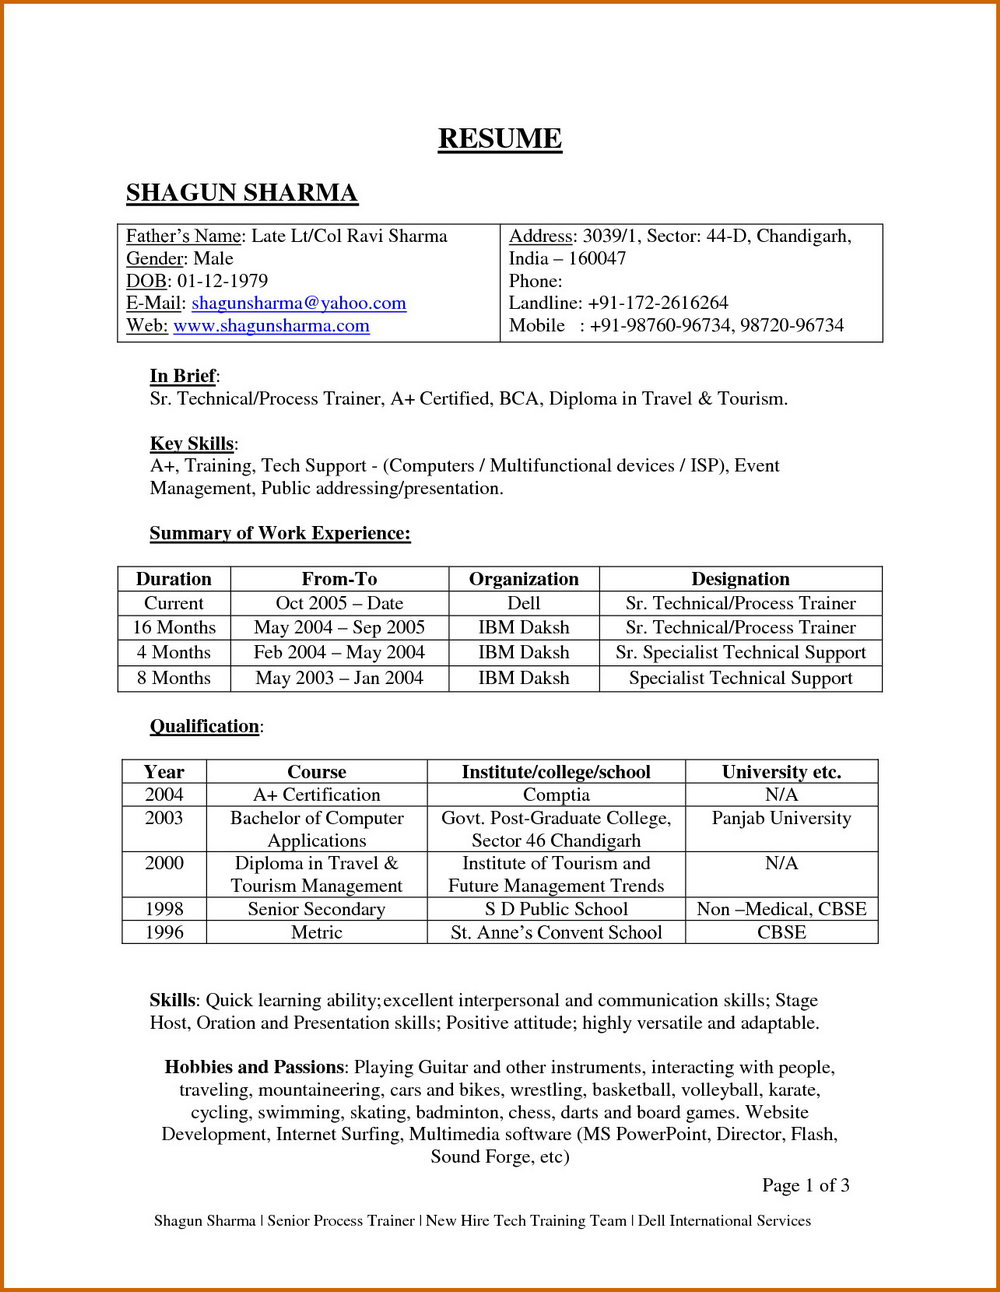 Resume For Aviation Job For Fresher - Resumes #MTUzMA ...